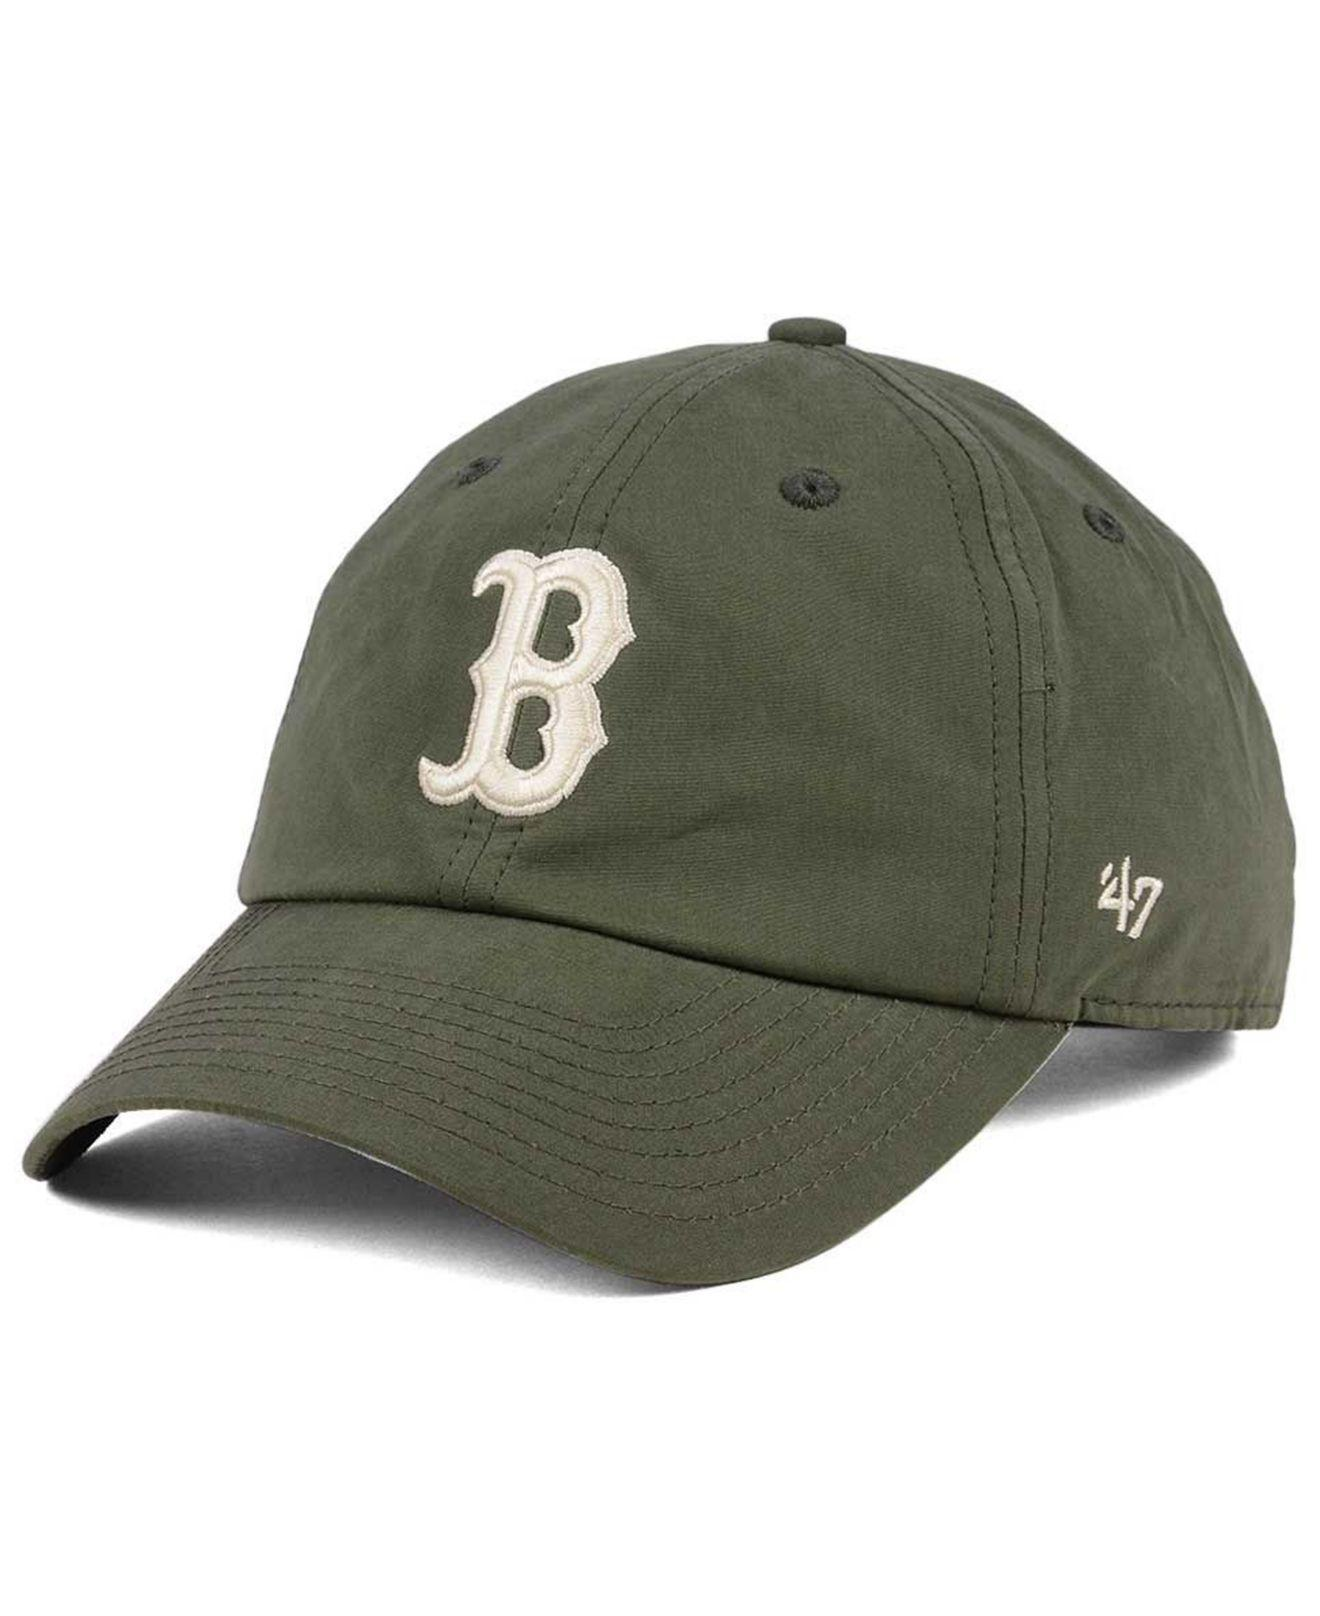 b6cddcc7 ... order lyst 47 brand harvest clean up cap in green for men 6bfd6 05261